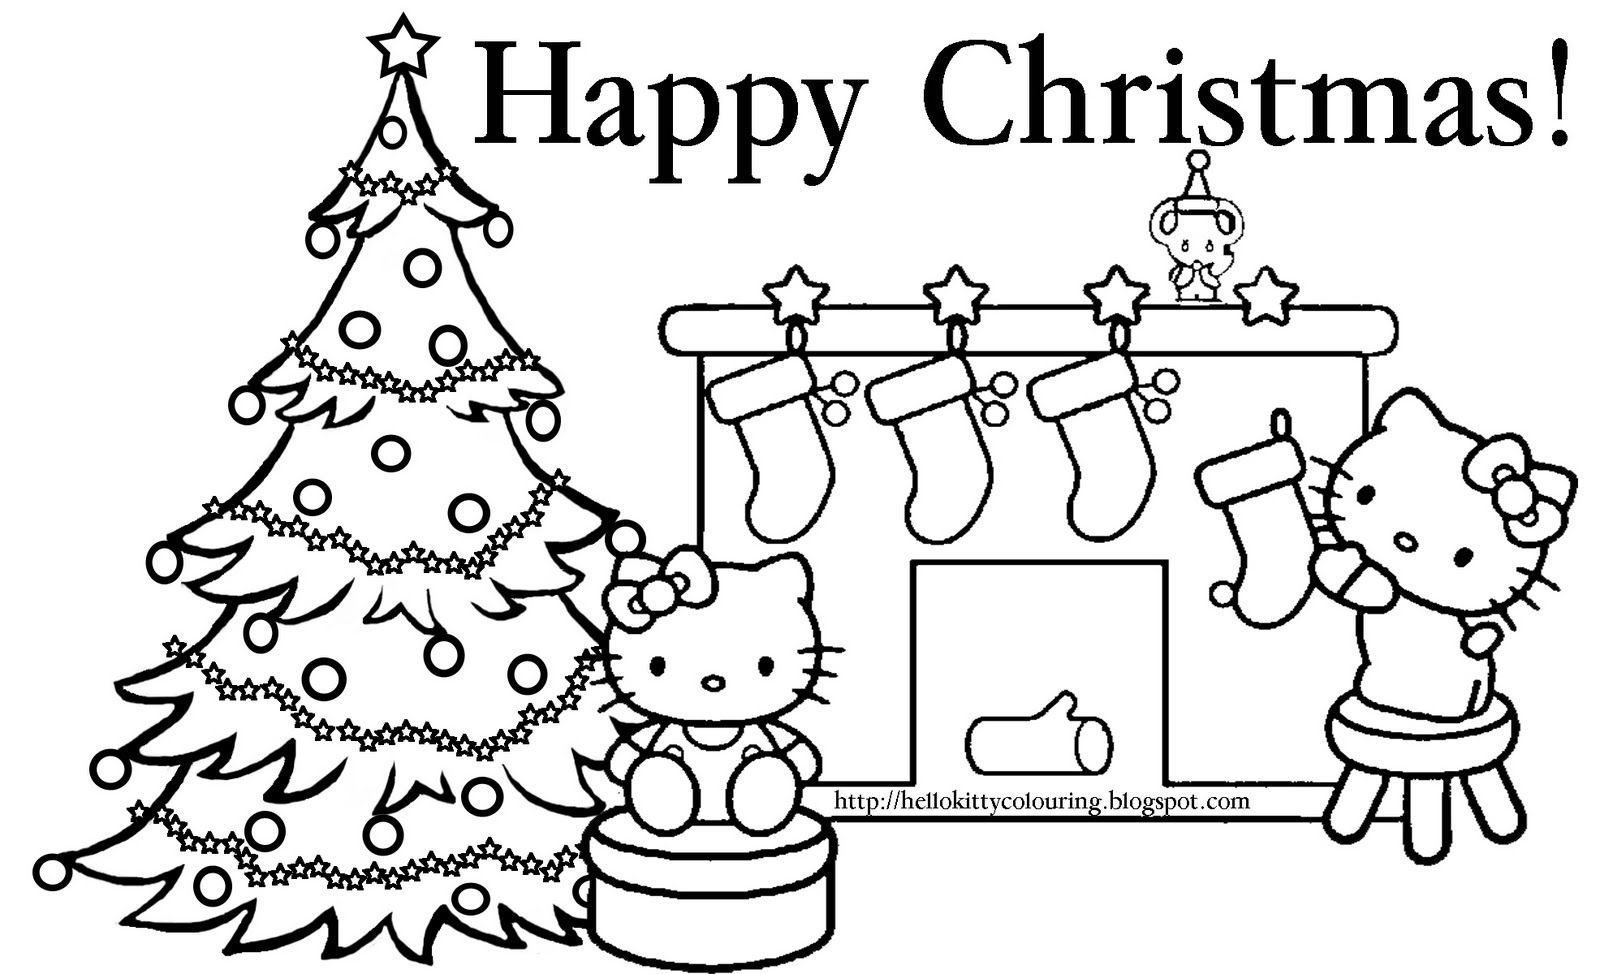 hello kitty christmas coloring pages HELLO KITTY COLORING PAGES | Christmas | Hello kitty colouring  hello kitty christmas coloring pages